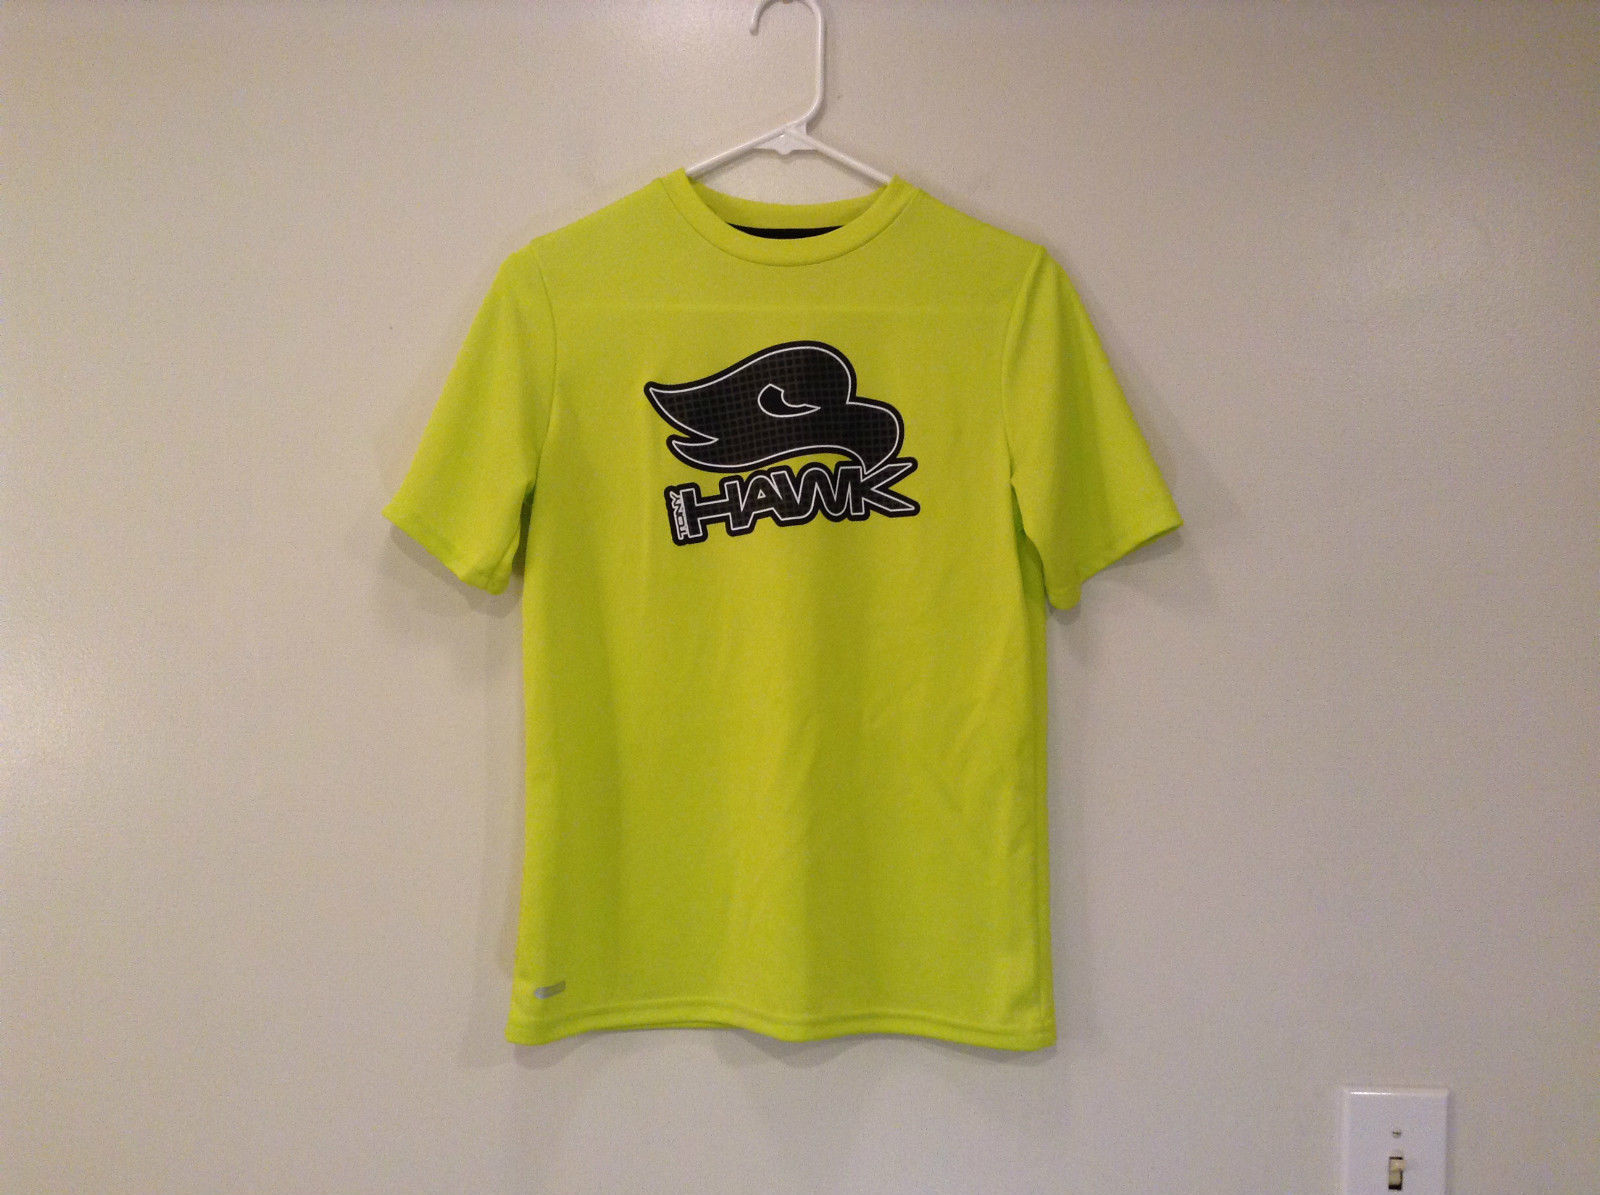 Lime Yellow Short Sleeve 100 Percent Polyester Shirt Hawk Size L 14 to 16